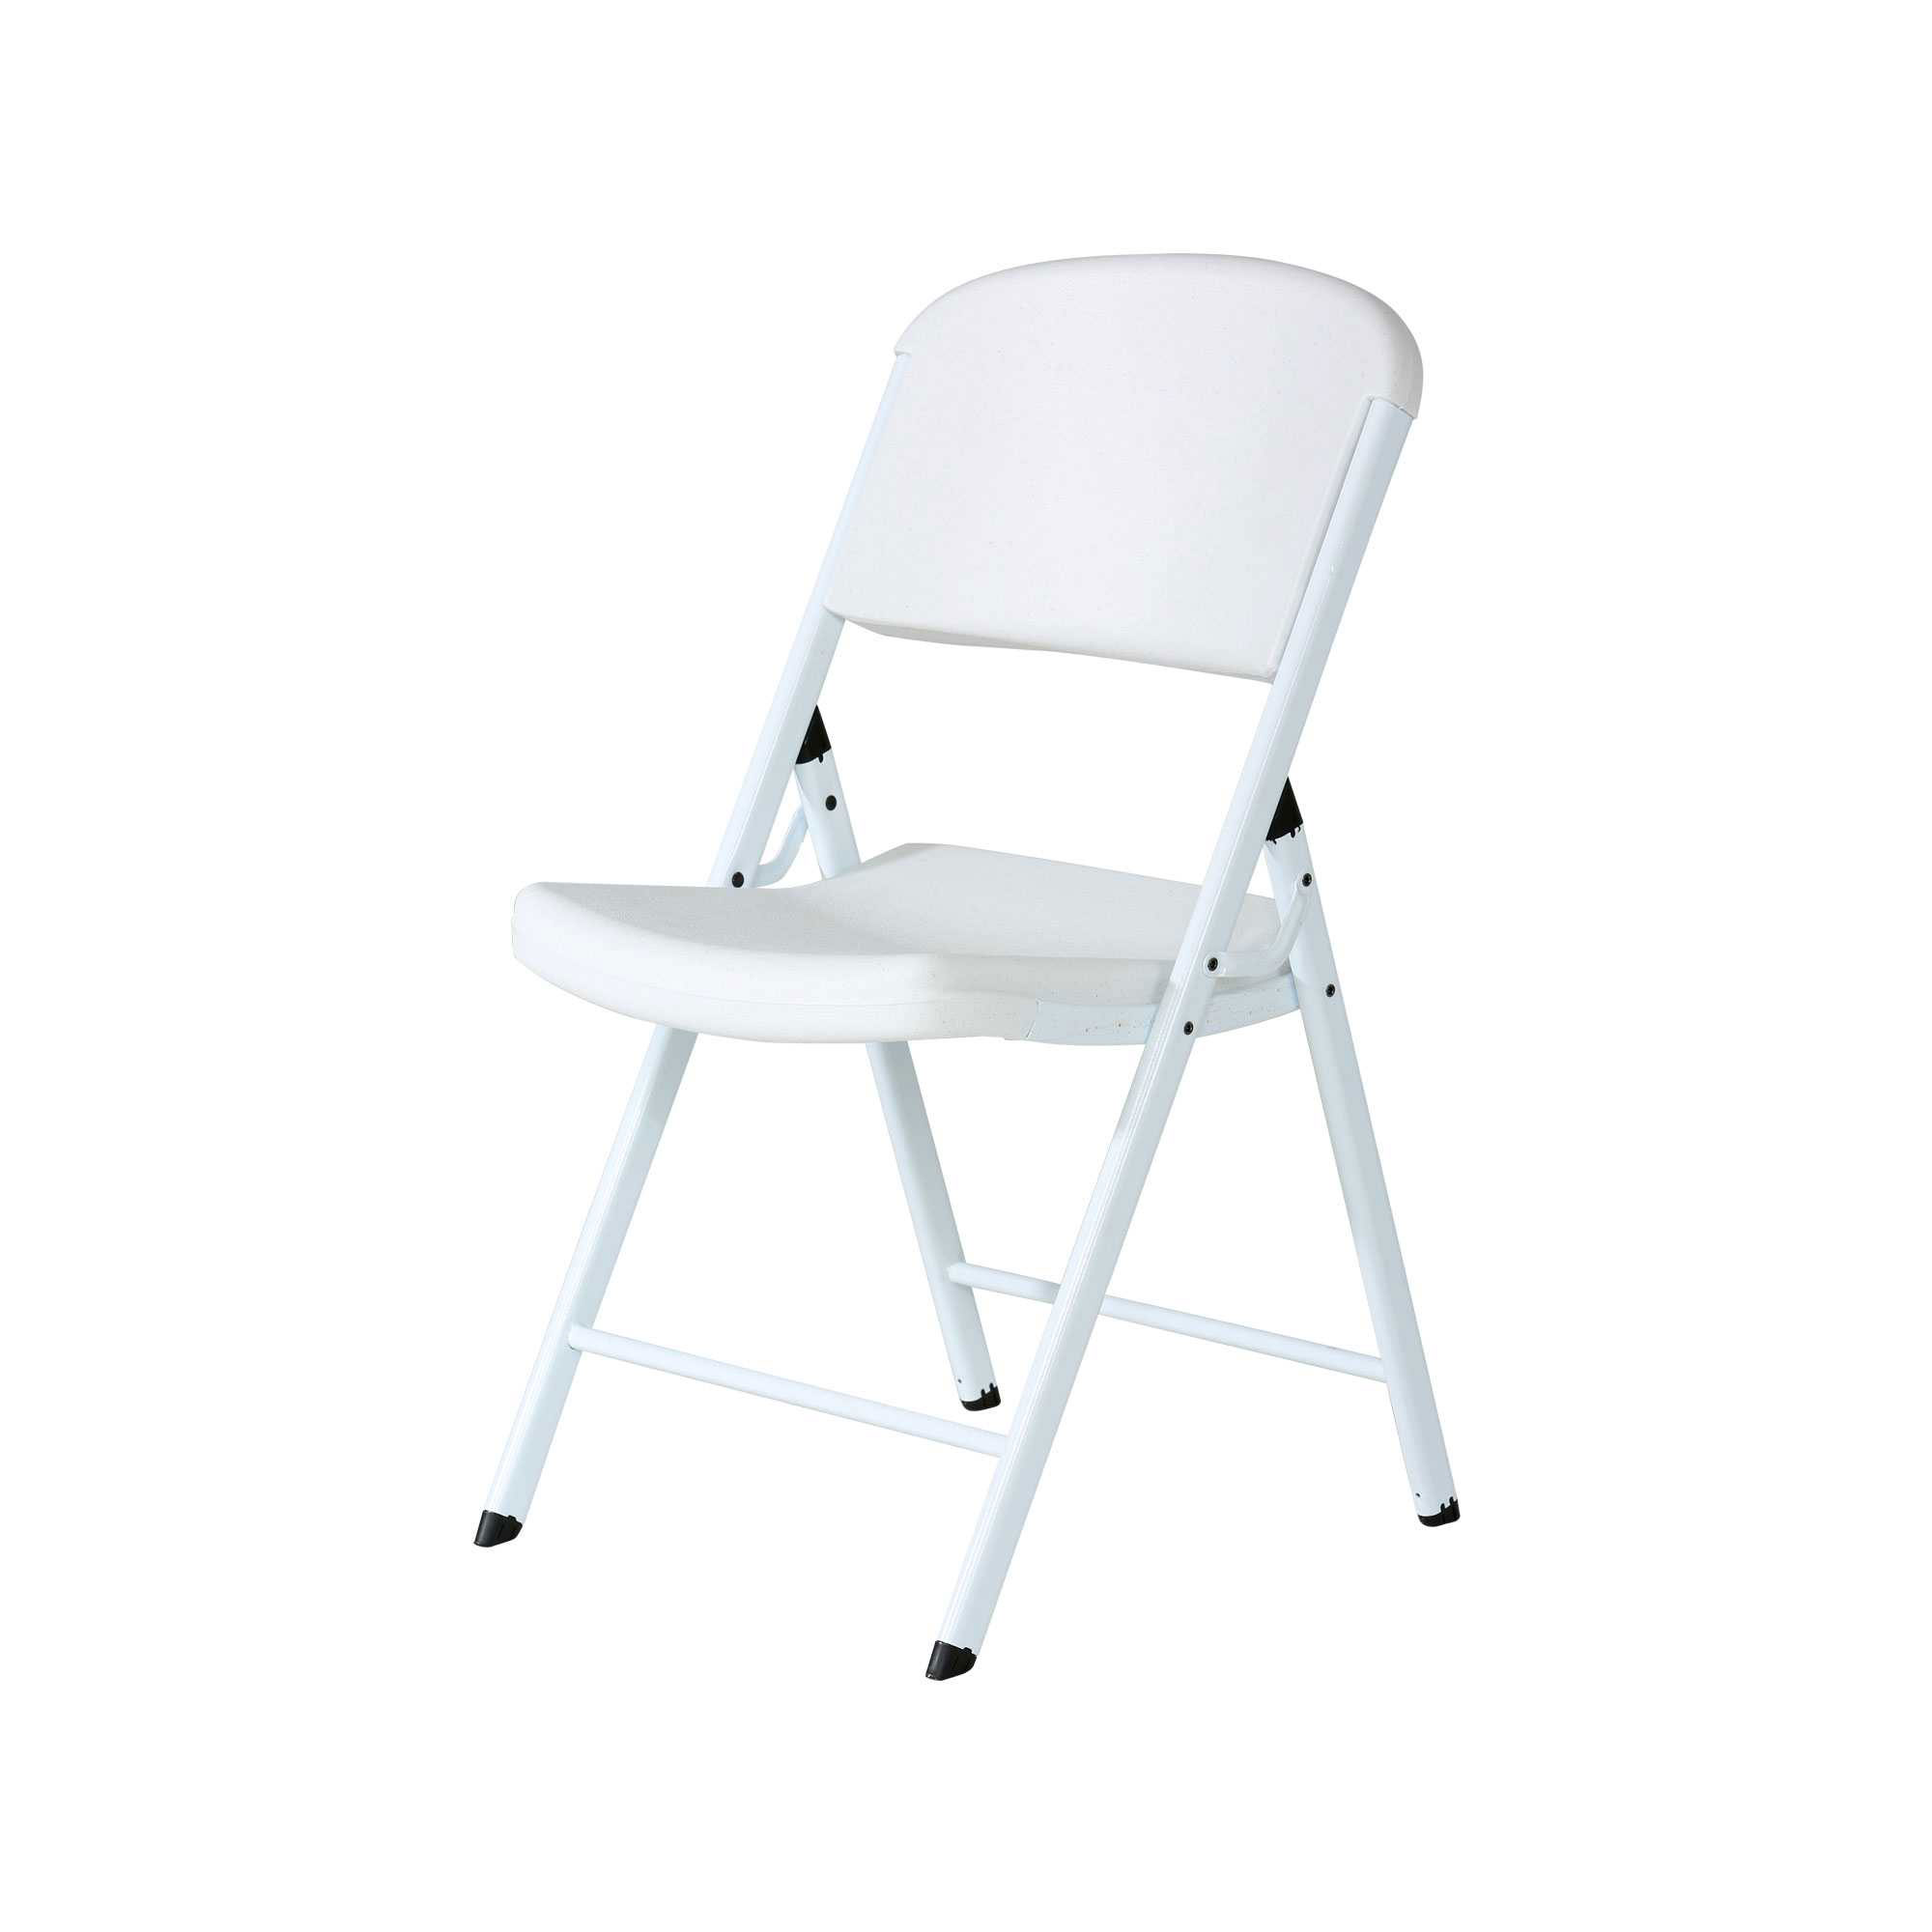 lifetime plastic chairs philippines graco doll high chair set 32 pack white sale today in bulk